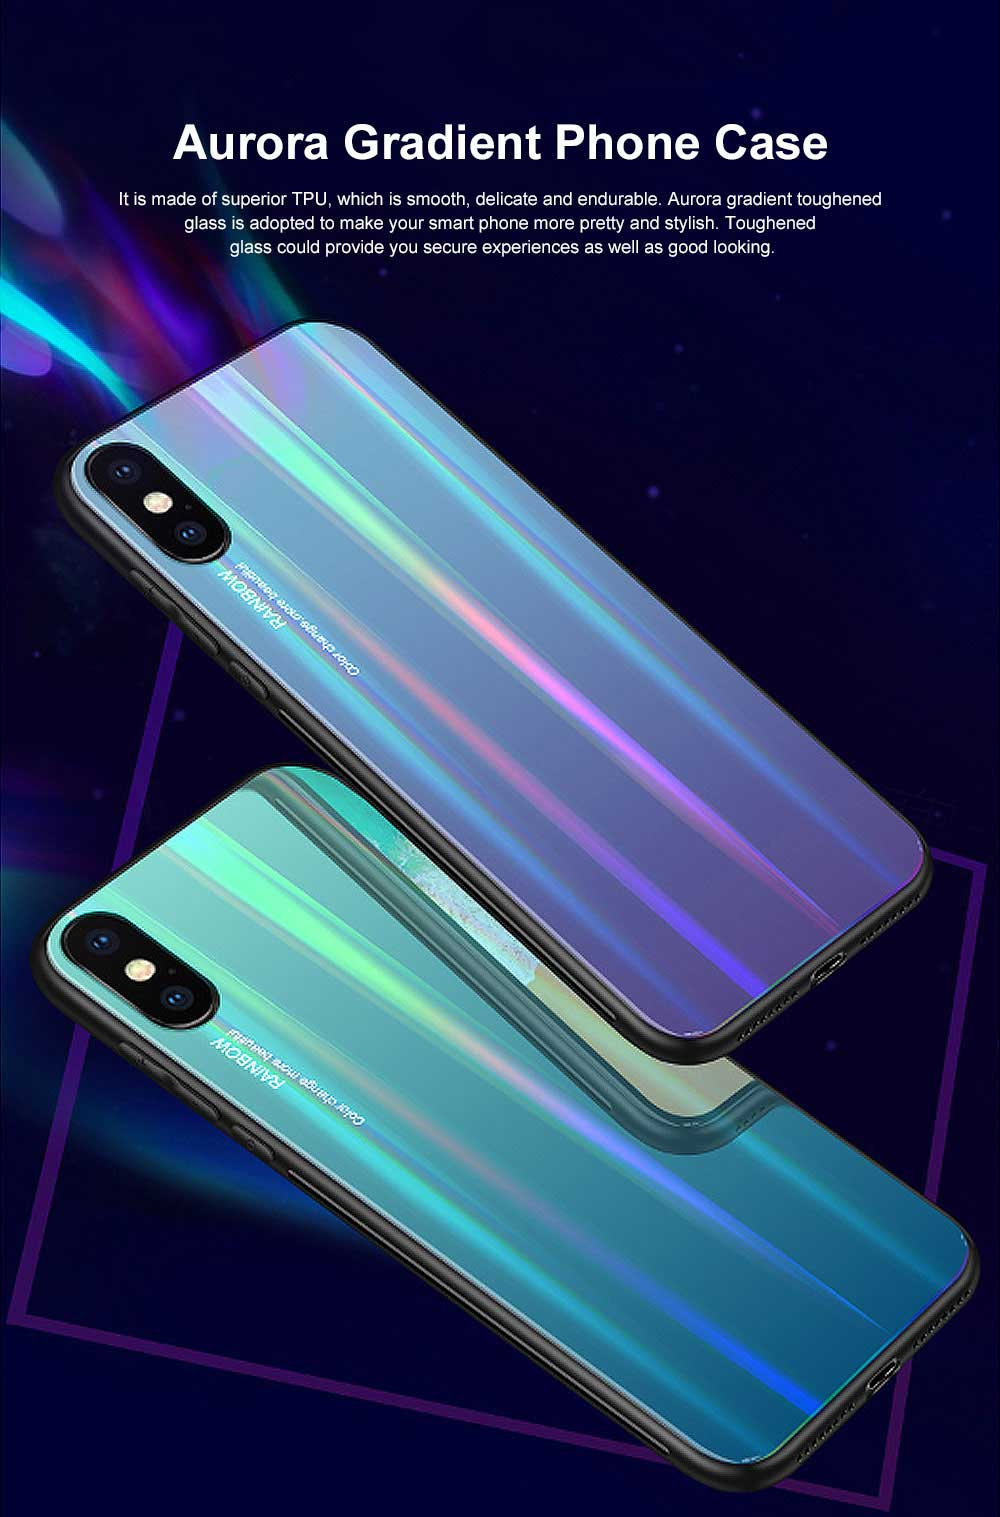 Aurora Gradient Phone Case, Toughened Glass Mobile Phone Case, Case Cover with Soft Edge, Minimalist Phone Case for iPhone 0